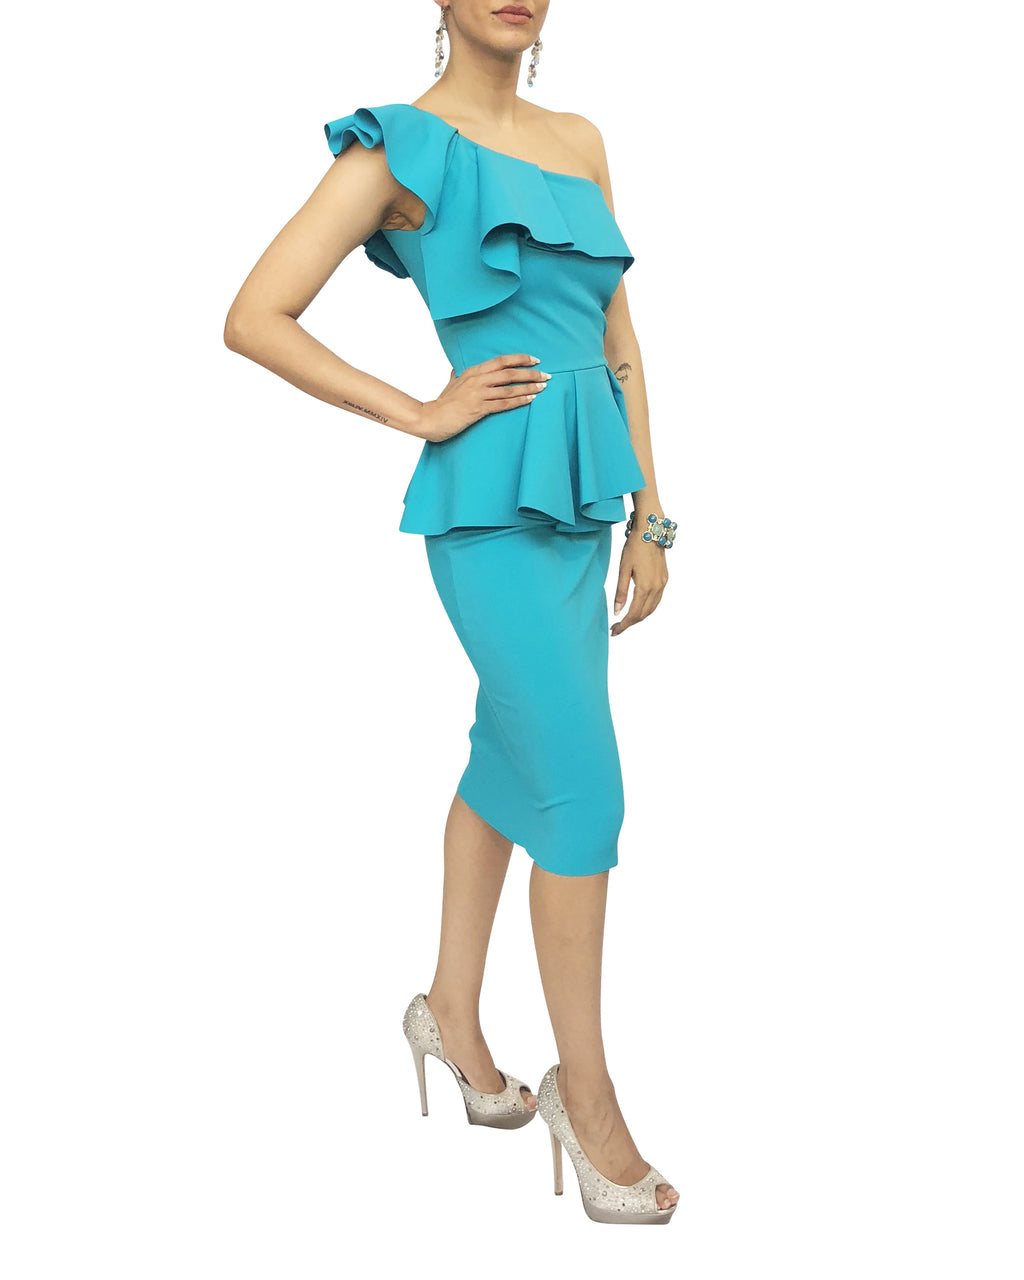 One-Shoulder Frill Peplum Dress